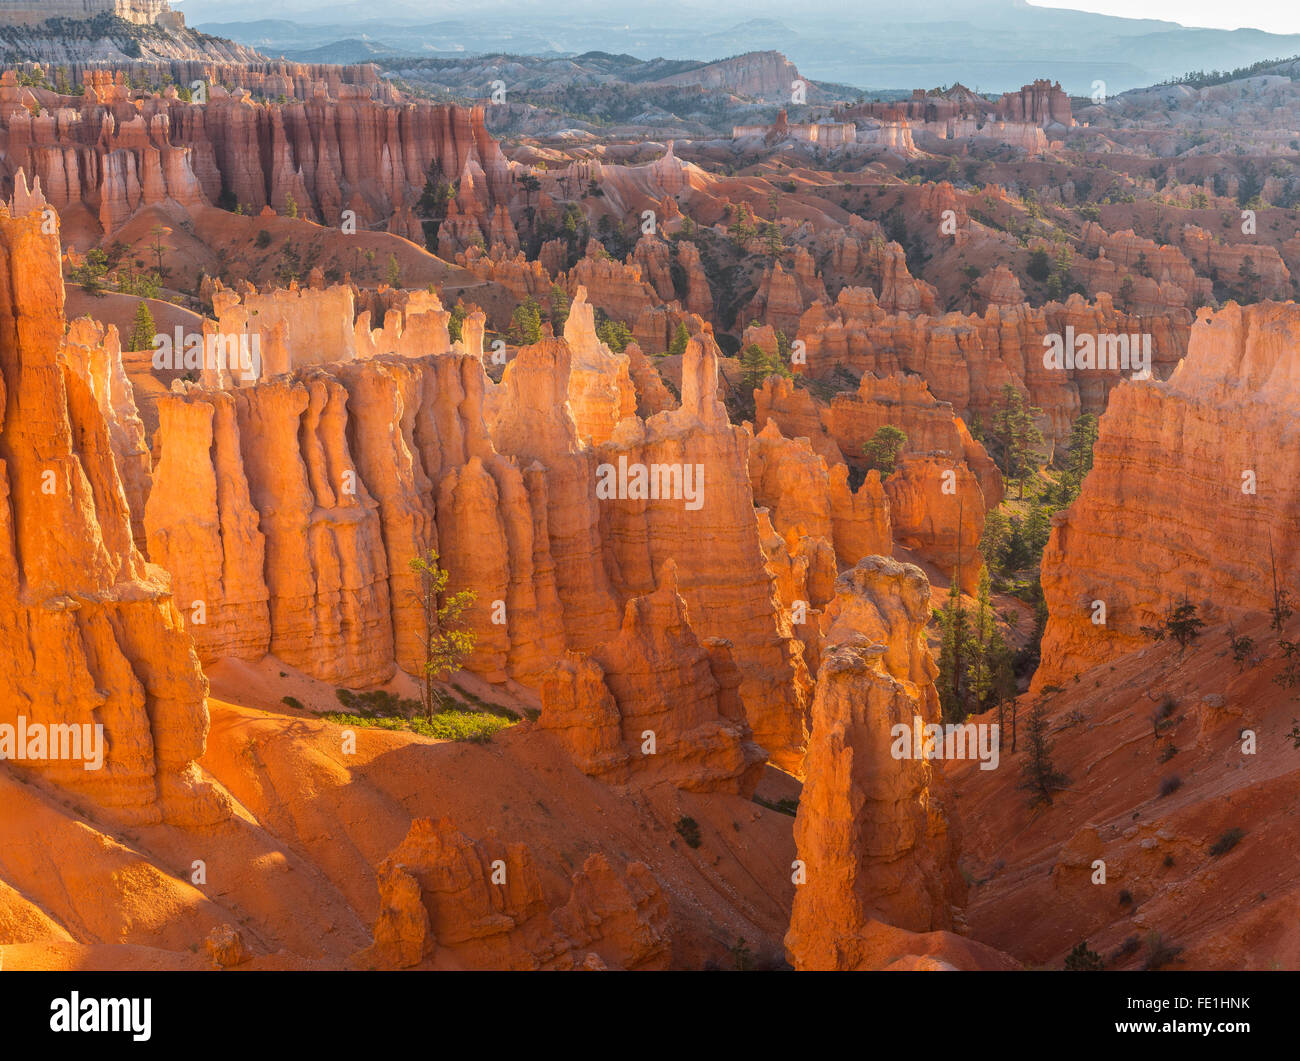 Bryce Canyon National Park, UT: Morning sun in the Bryce Ampitheater backlighting the hoodoos and sandstone pinnacles - Stock Image